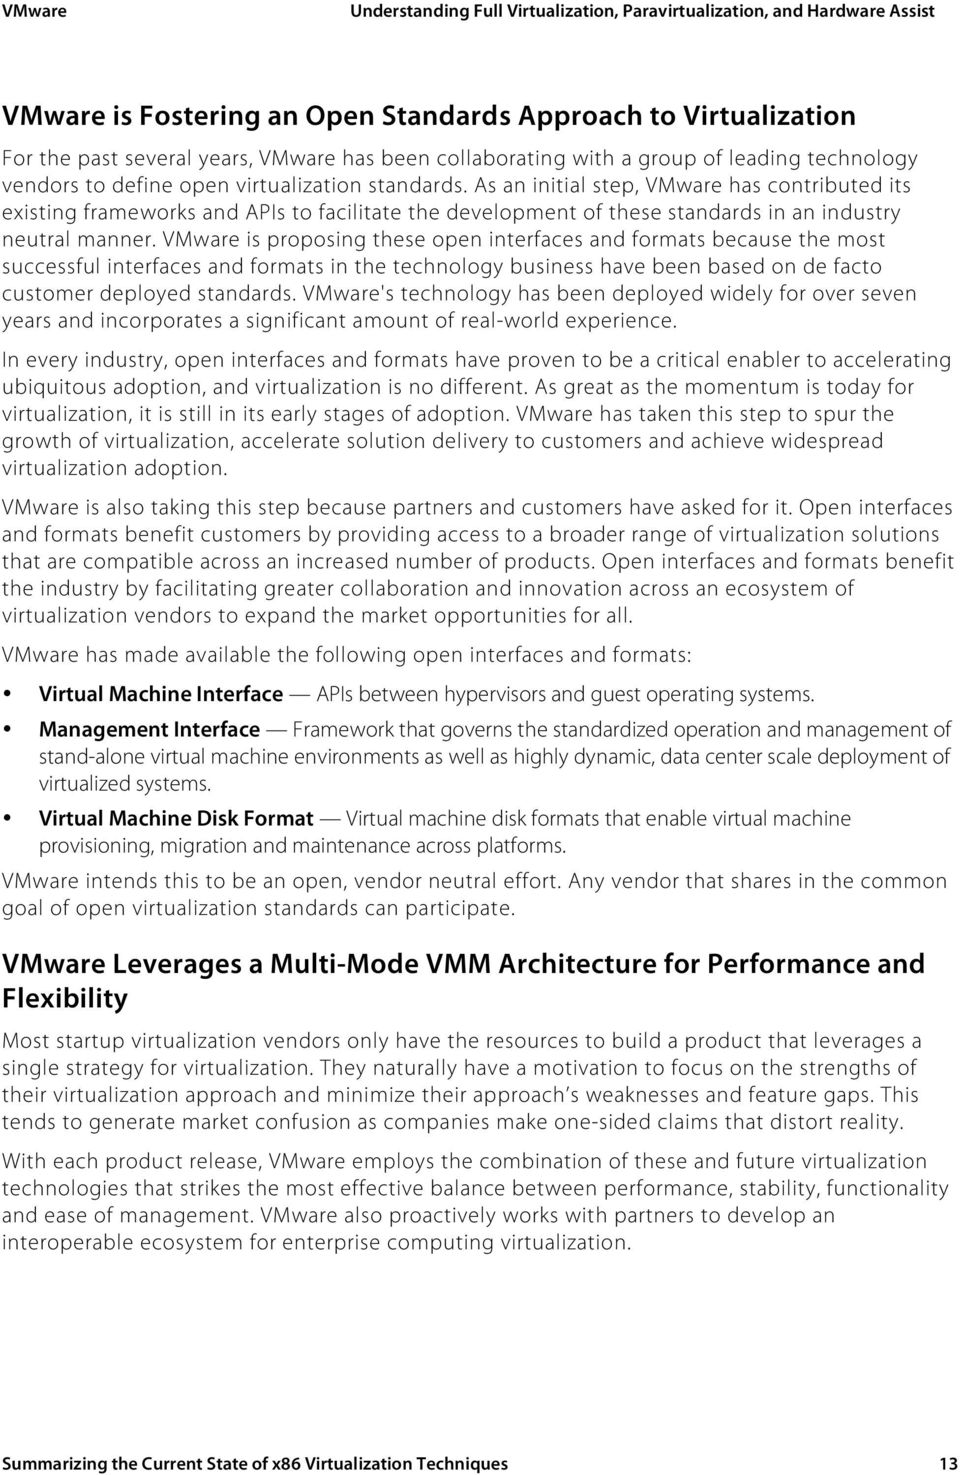 VMware is proposing these open interfaces and formats because the most successful interfaces and formats in the technology business have been based on de facto customer deployed standards.